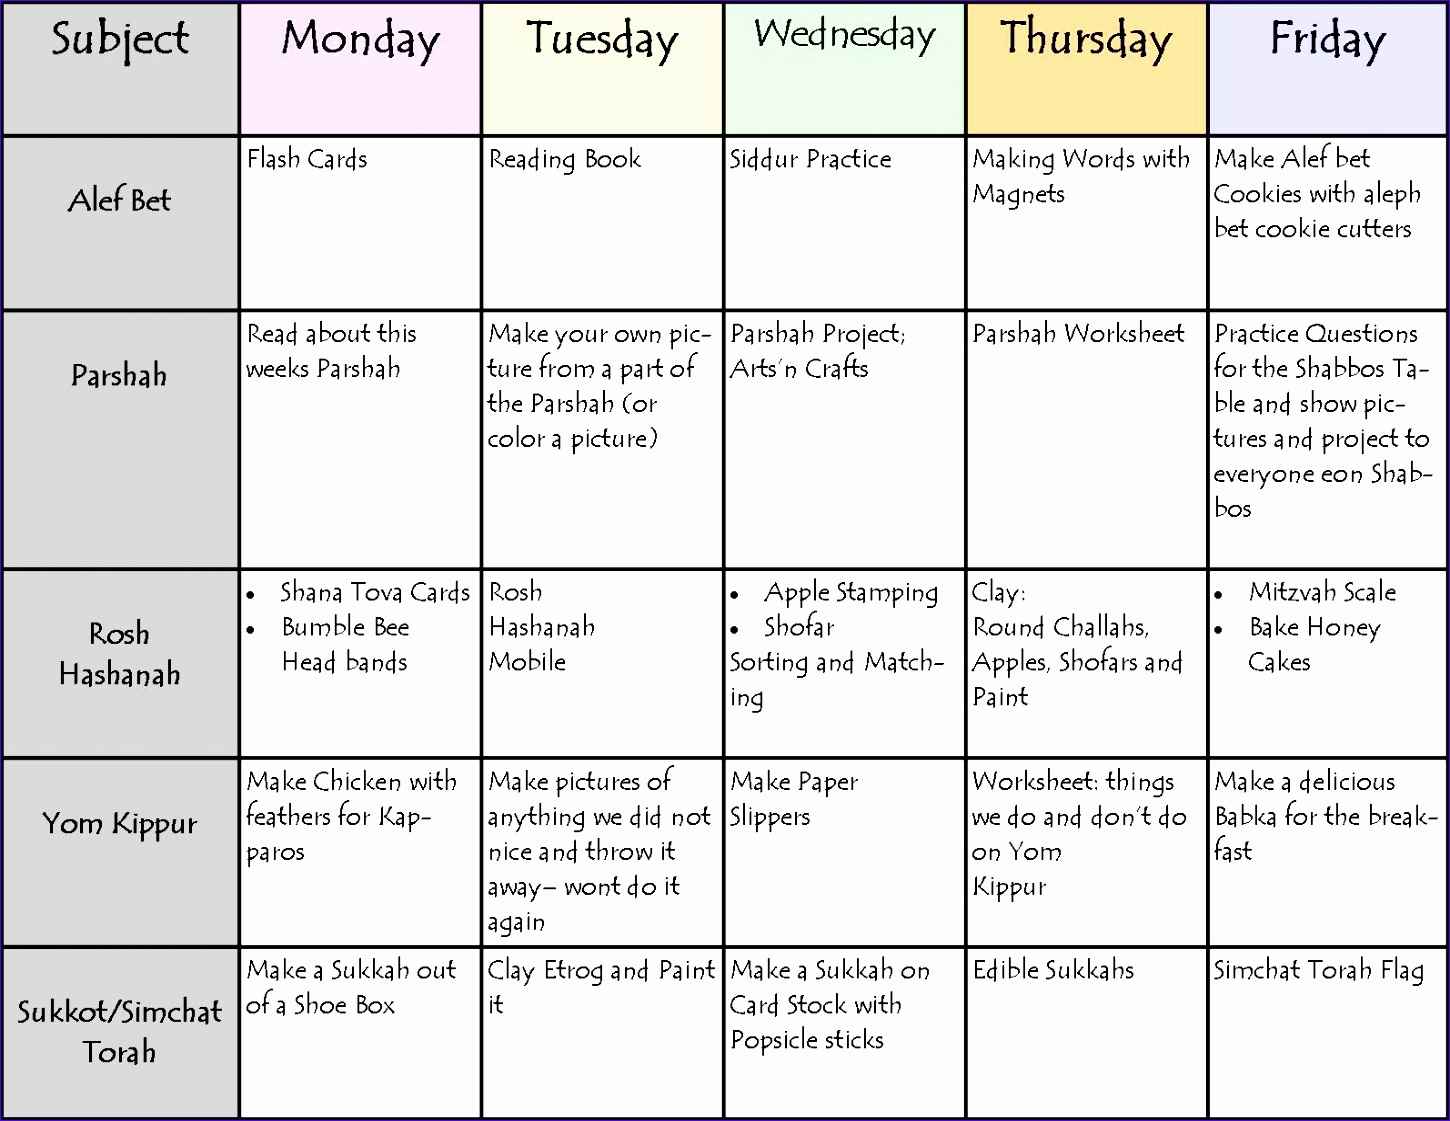 weekly employee shift schedule template excel 1